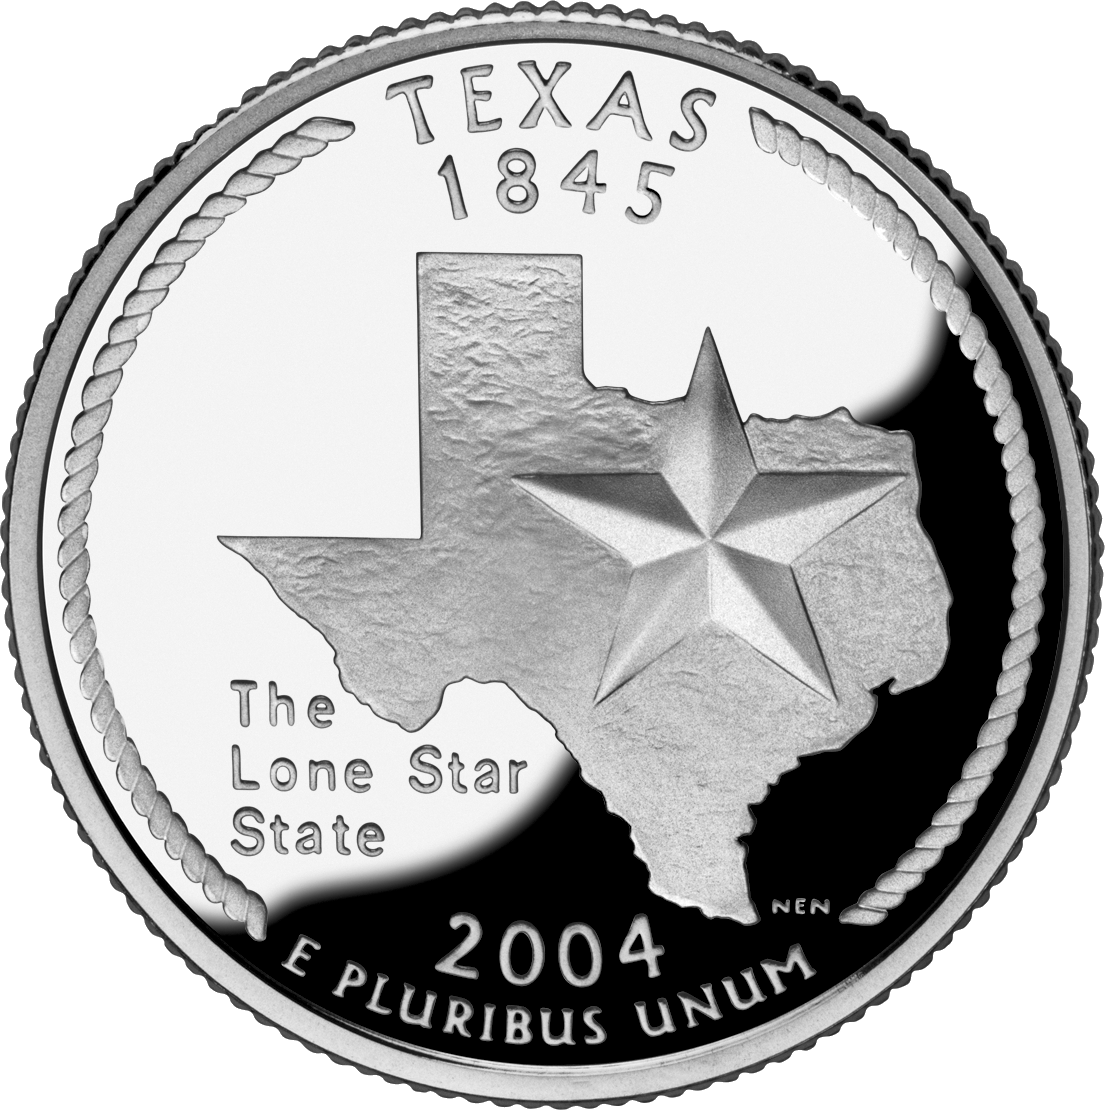 Nickel clipart american coin.  texas state quarter